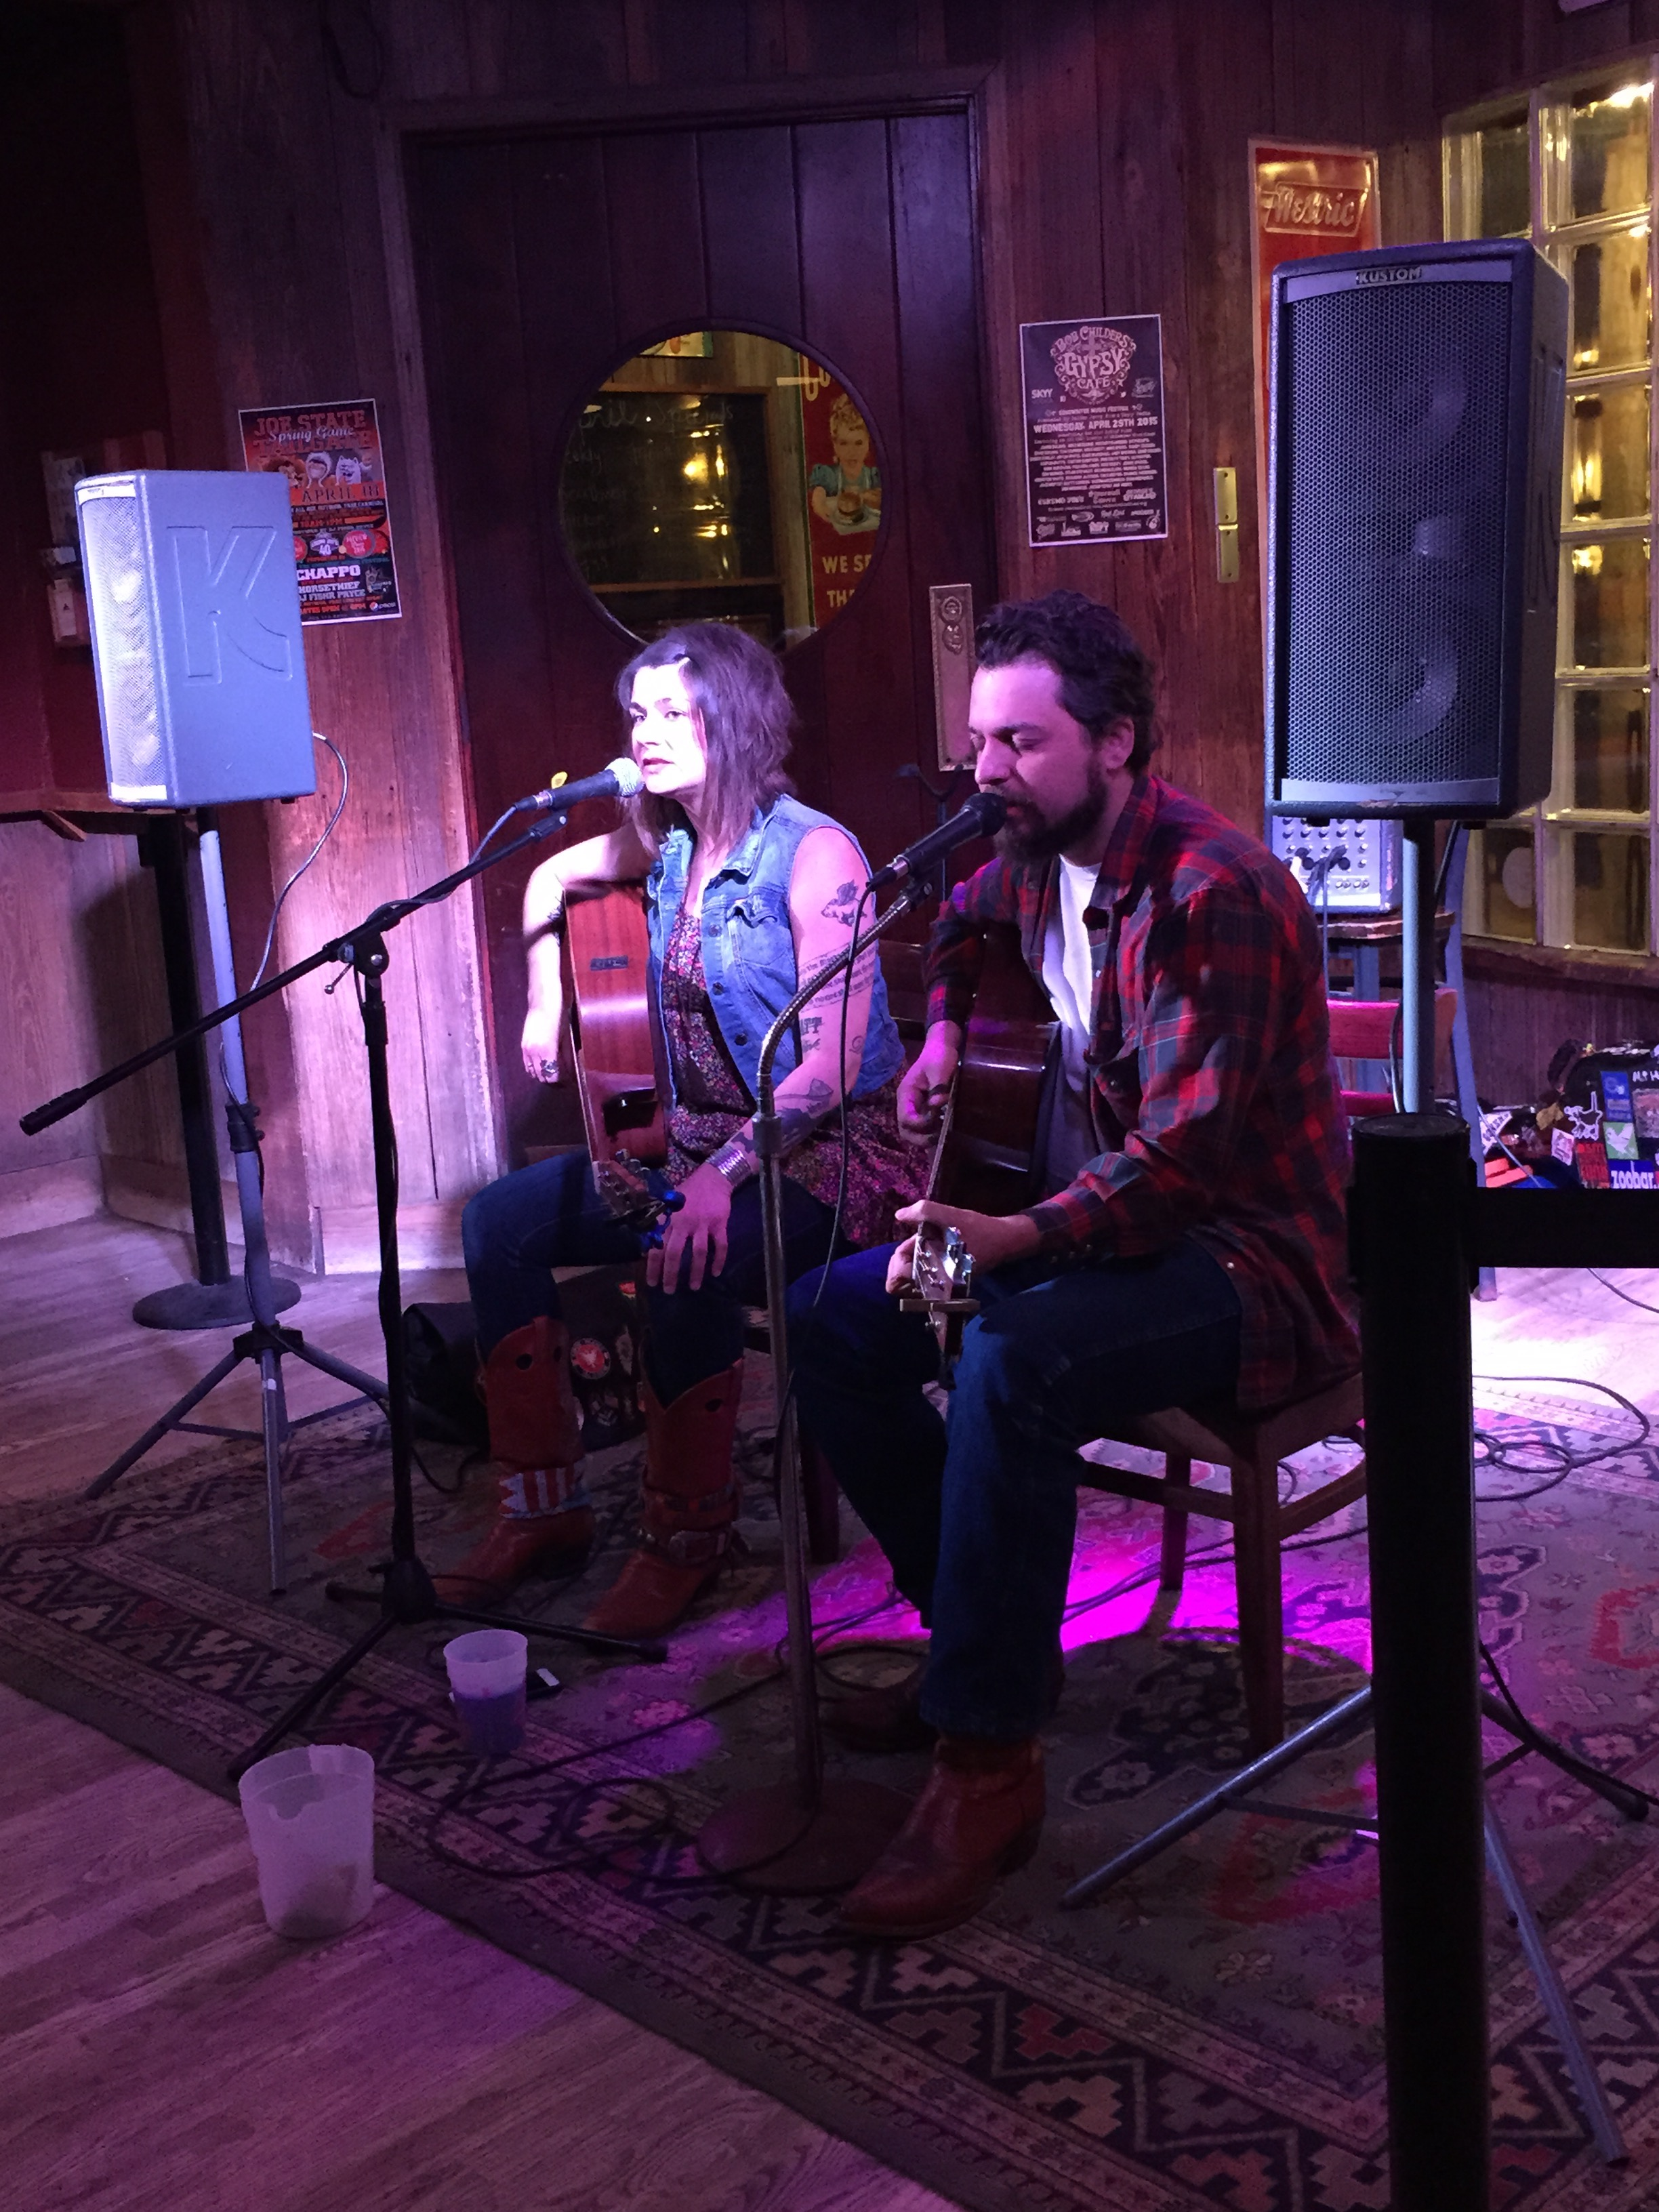 Luck & prayers: Musicians Ali Harter and Wink Burcham work for health care as parents